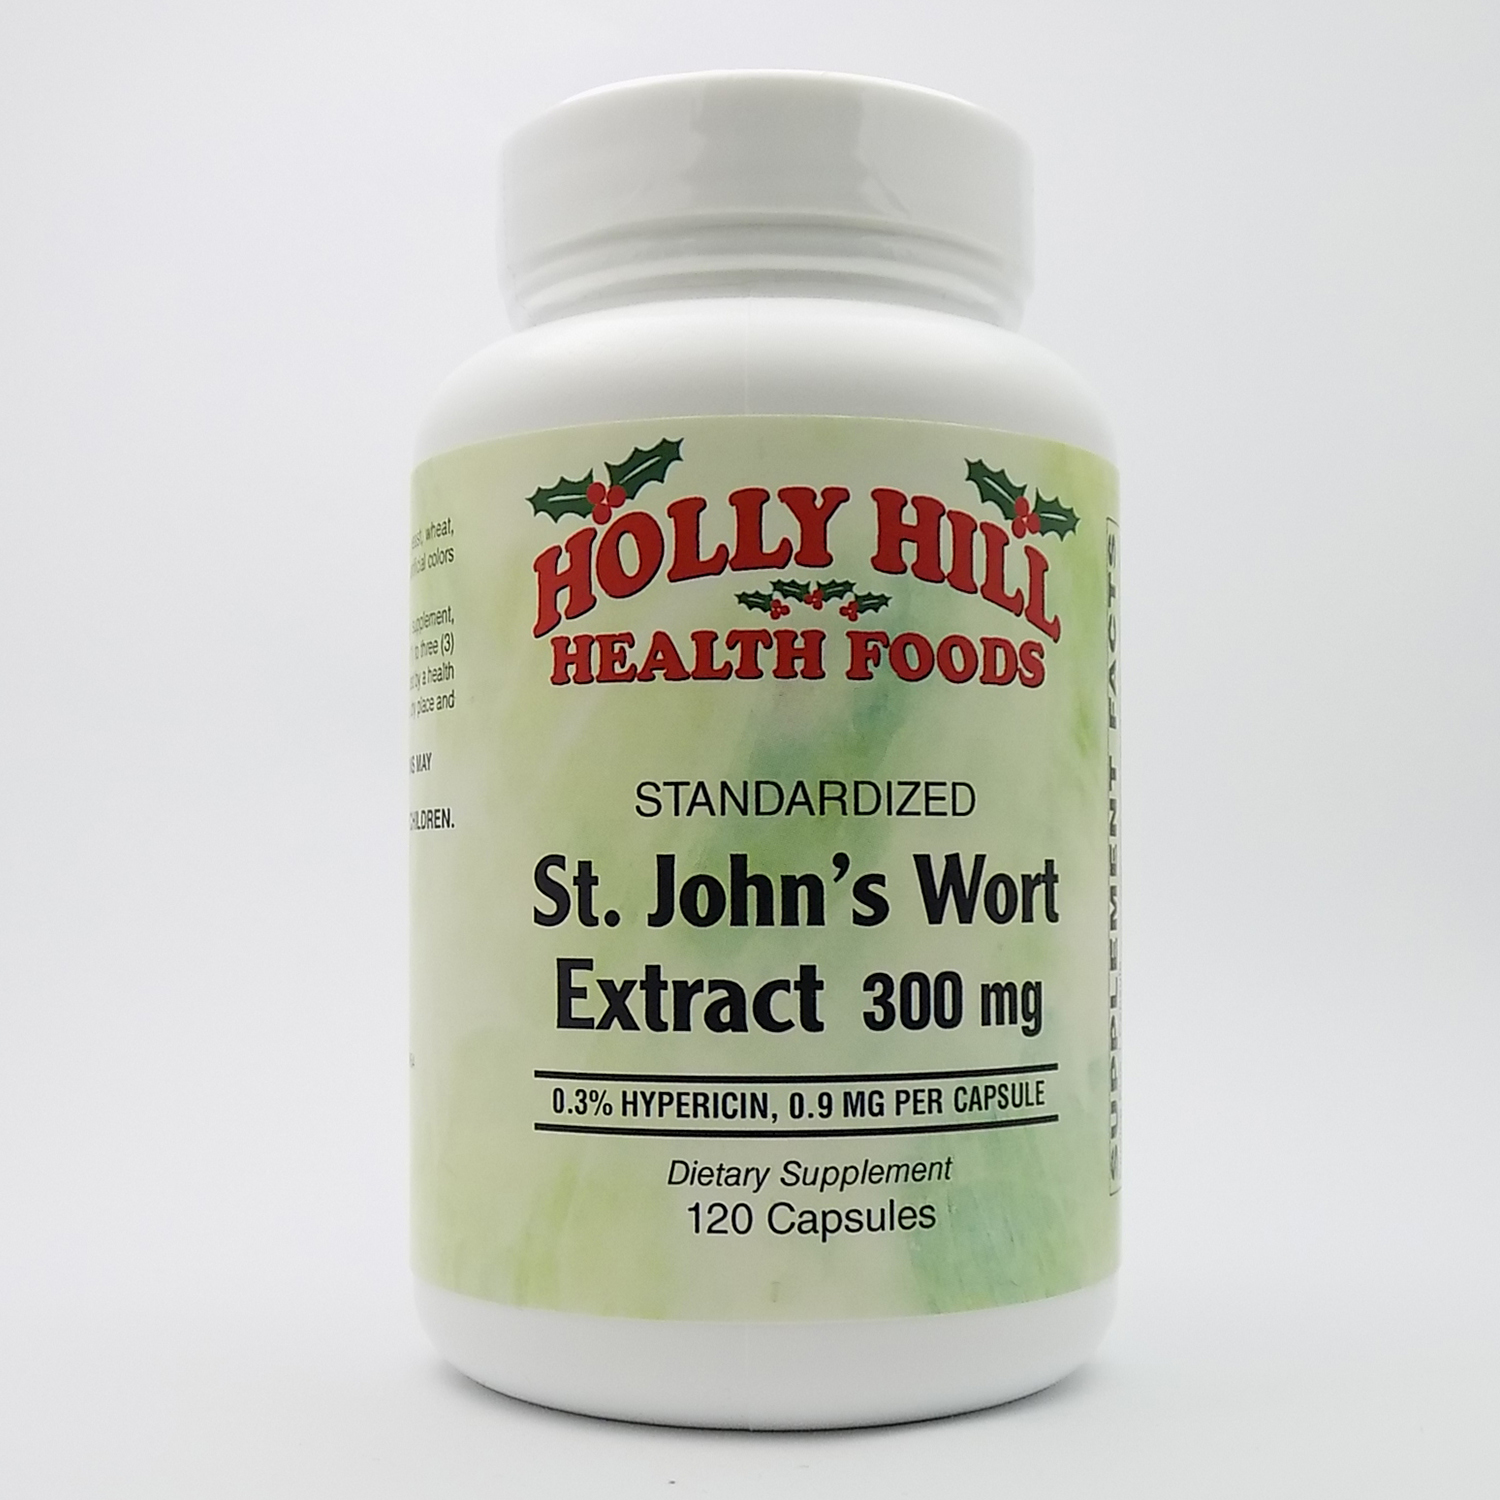 Holly Hill Health Foods, Standardized St. John's Wort Extract, 300 MG, 120 Capsules